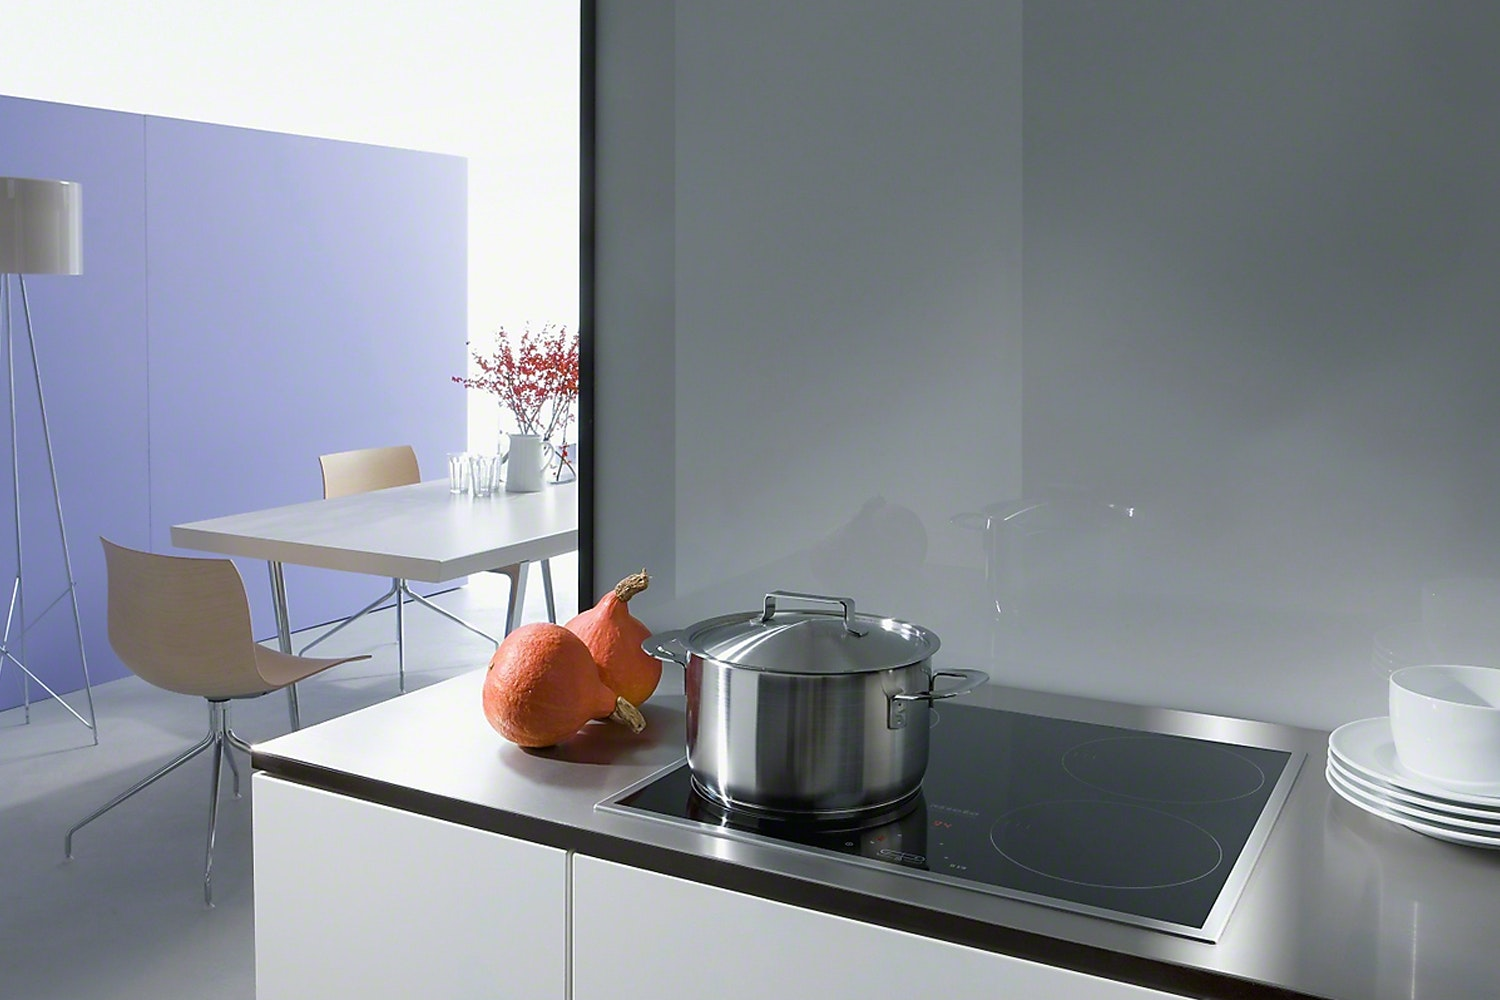 KM 6115  Induction hob with onset controls   with 4 cooking zones for maximum convenience at an attractive entry level price